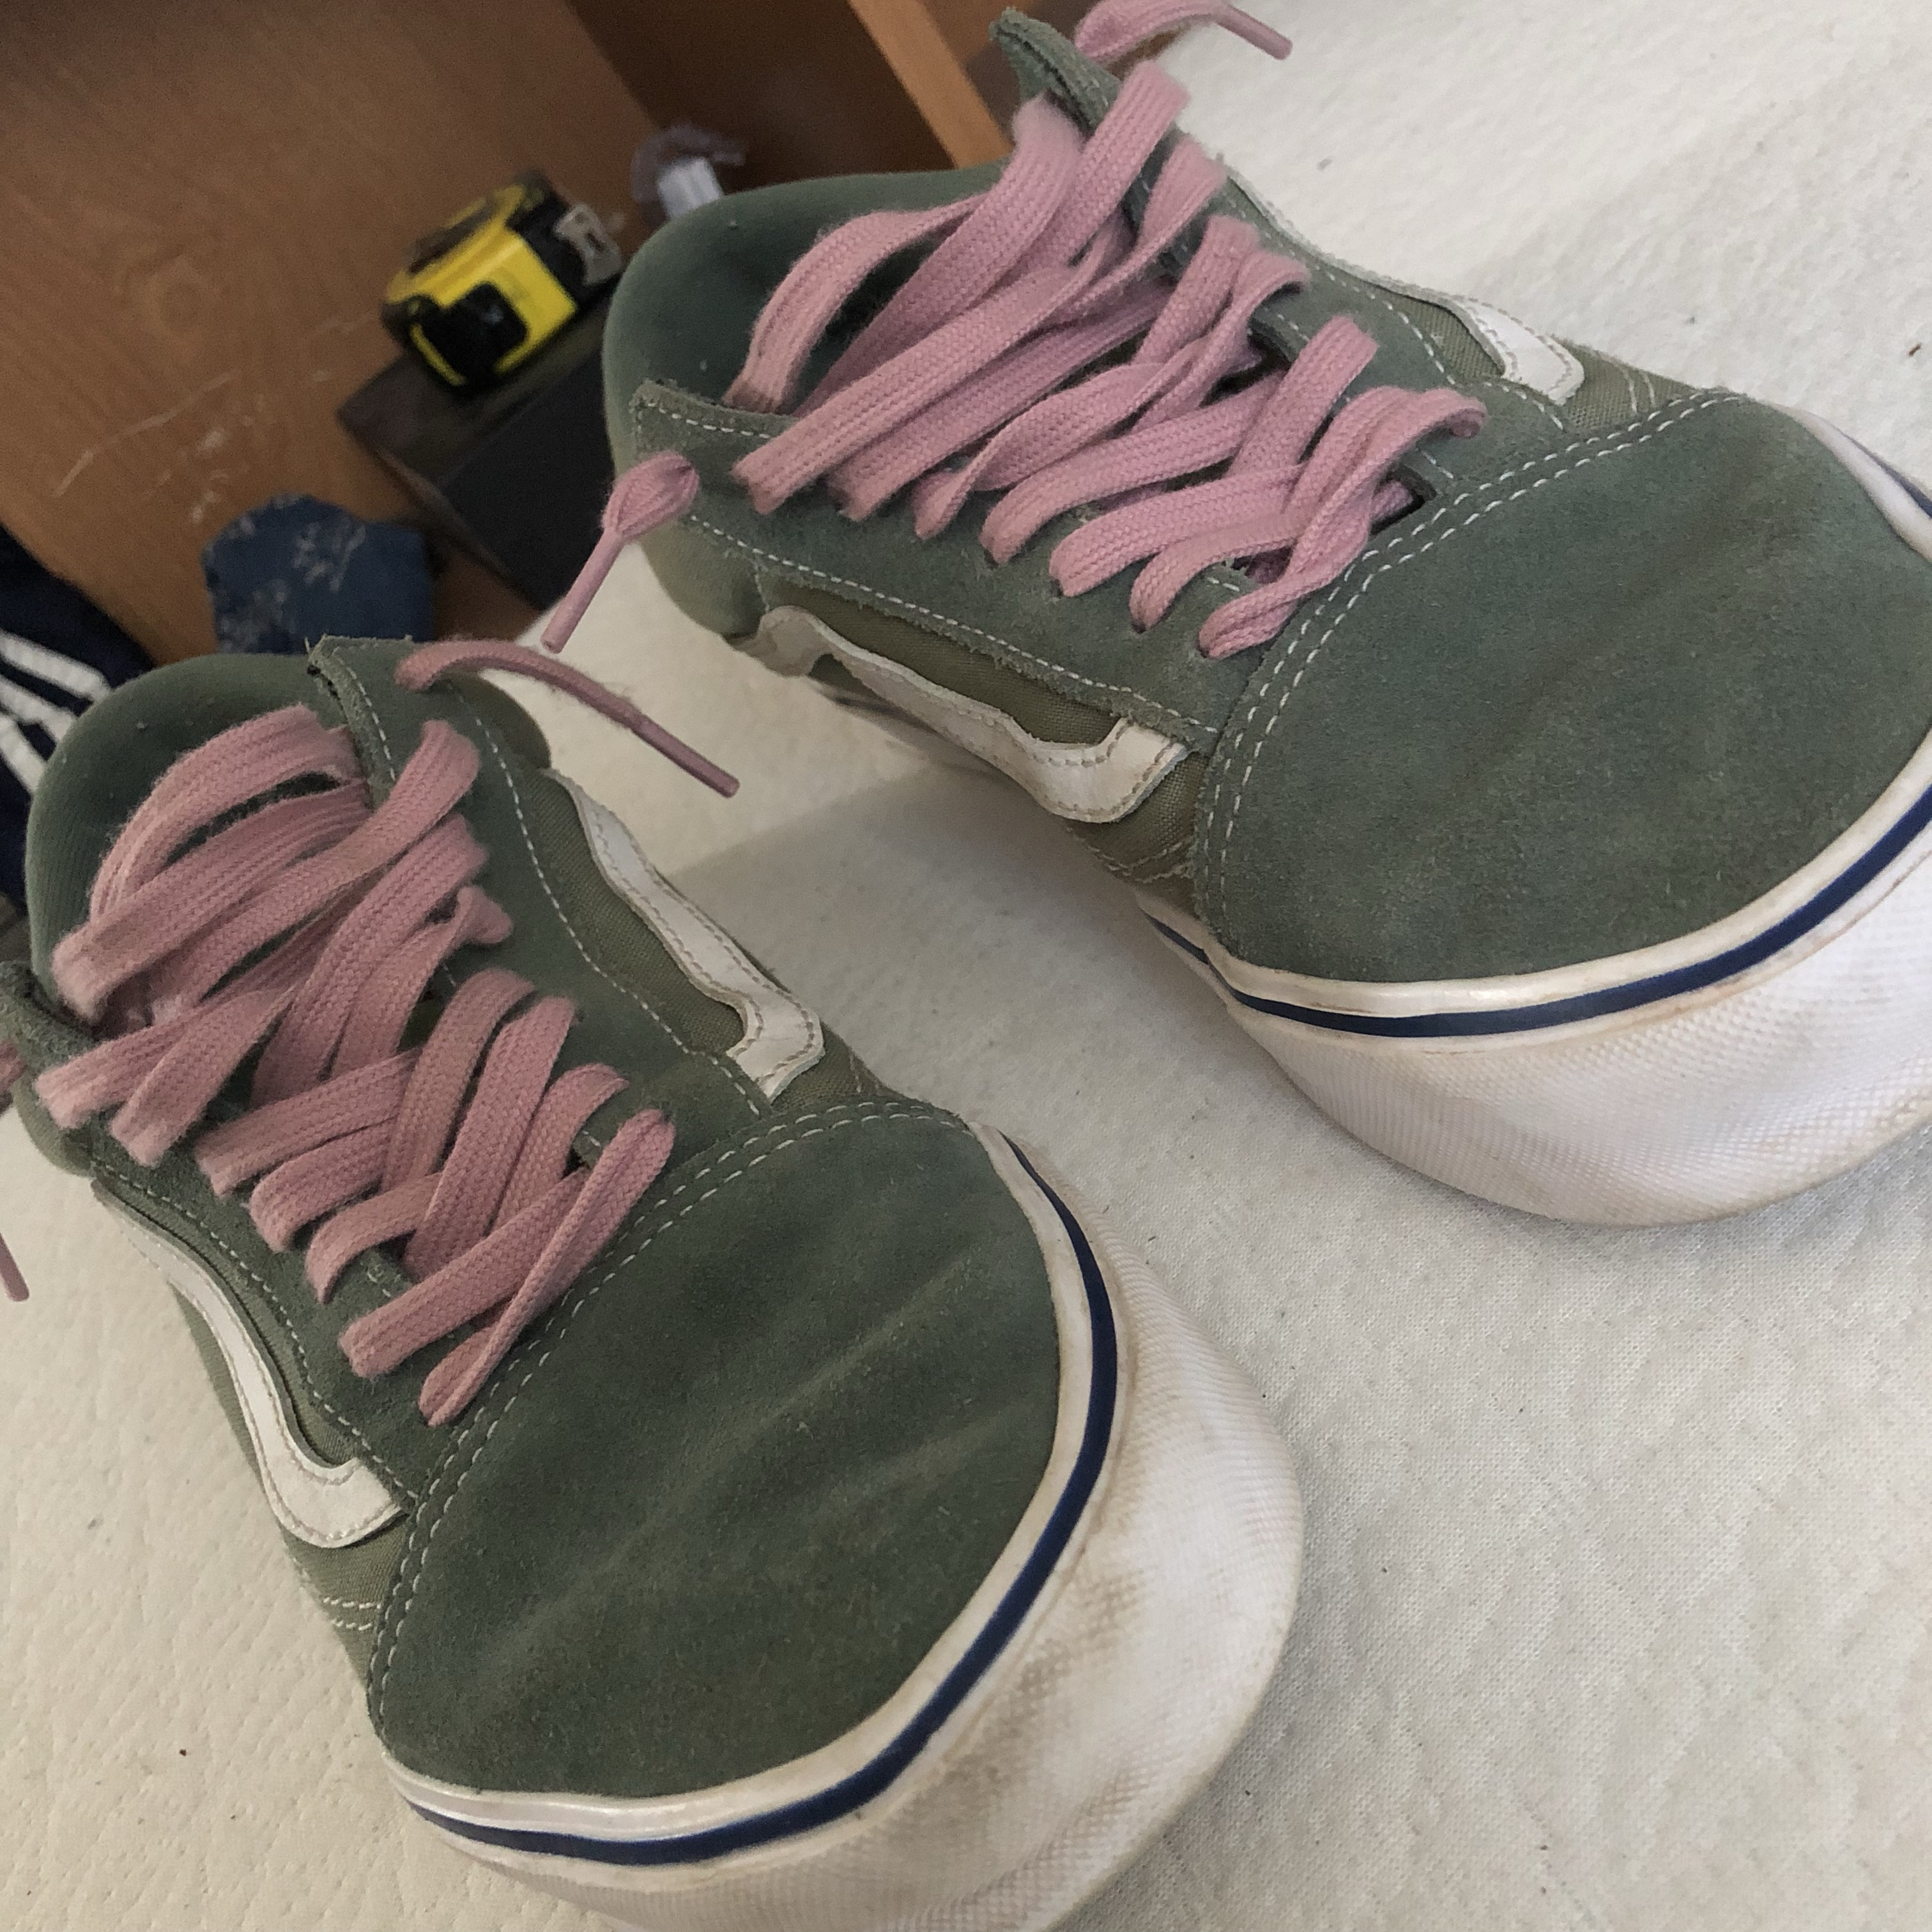 Vans Old Skool Green Vans With Pink Laces Sick Depop